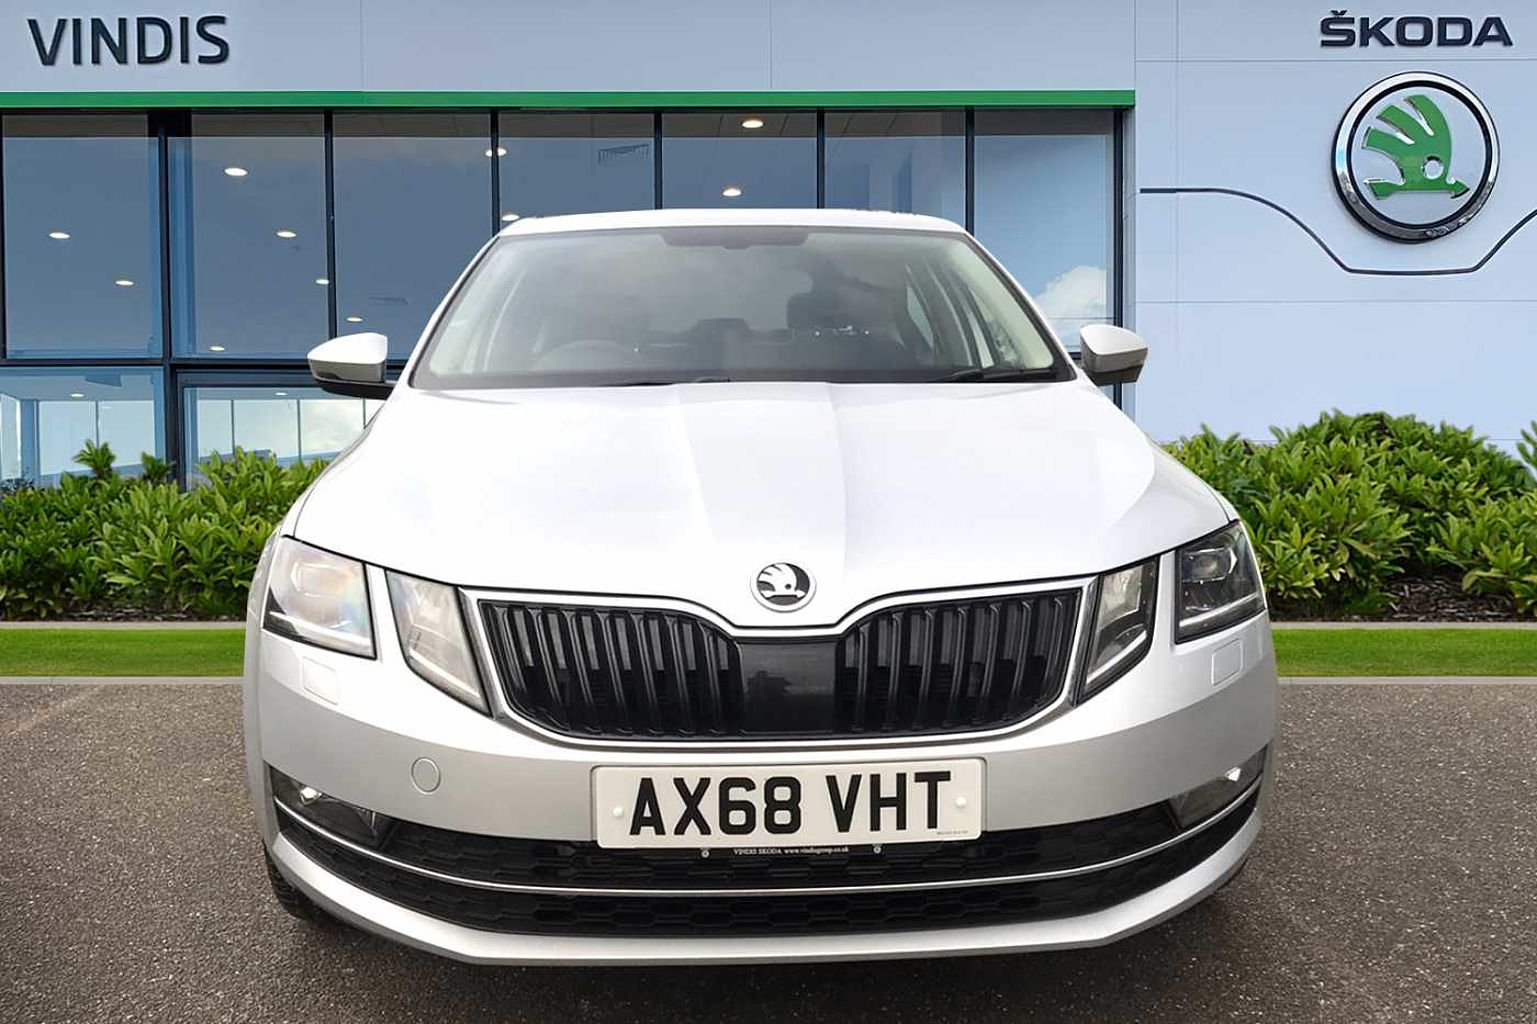 ŠKODA Octavia Hatch SE L 1.5 TSI 150 PS 6G Man